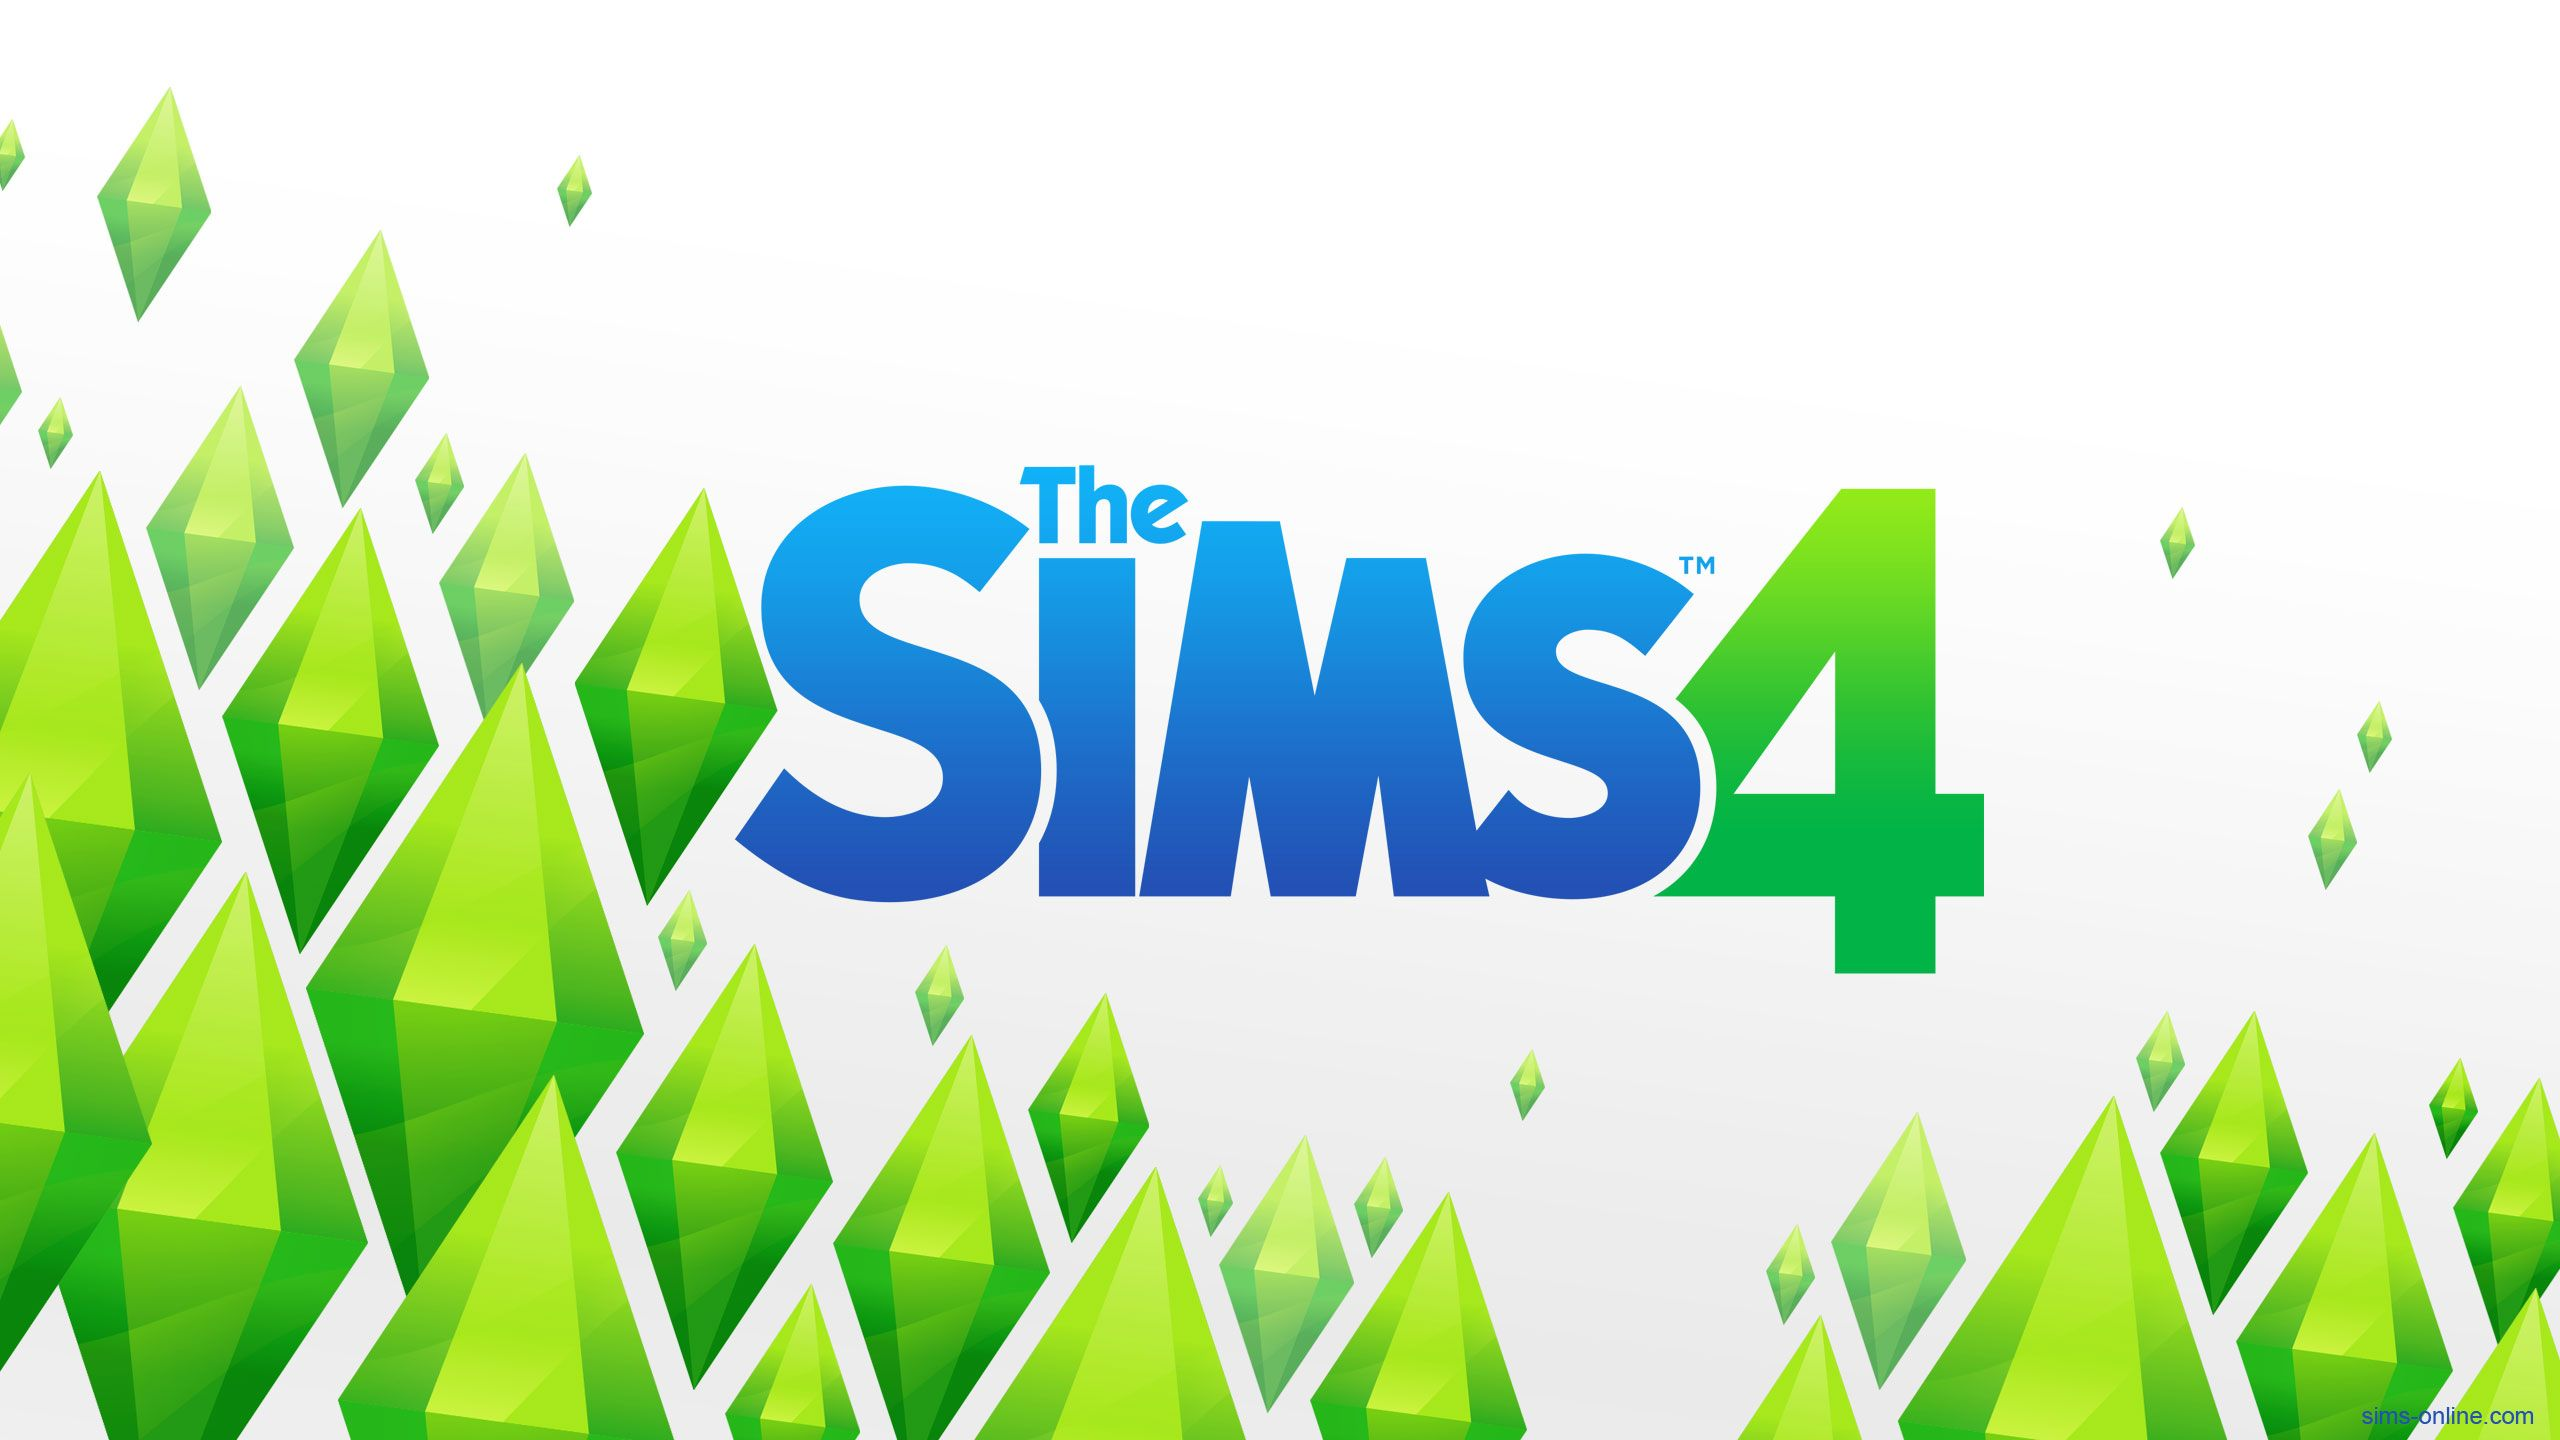 Sims 4 Wallpapers Top Free Sims 4 Backgrounds Wallpaperaccess